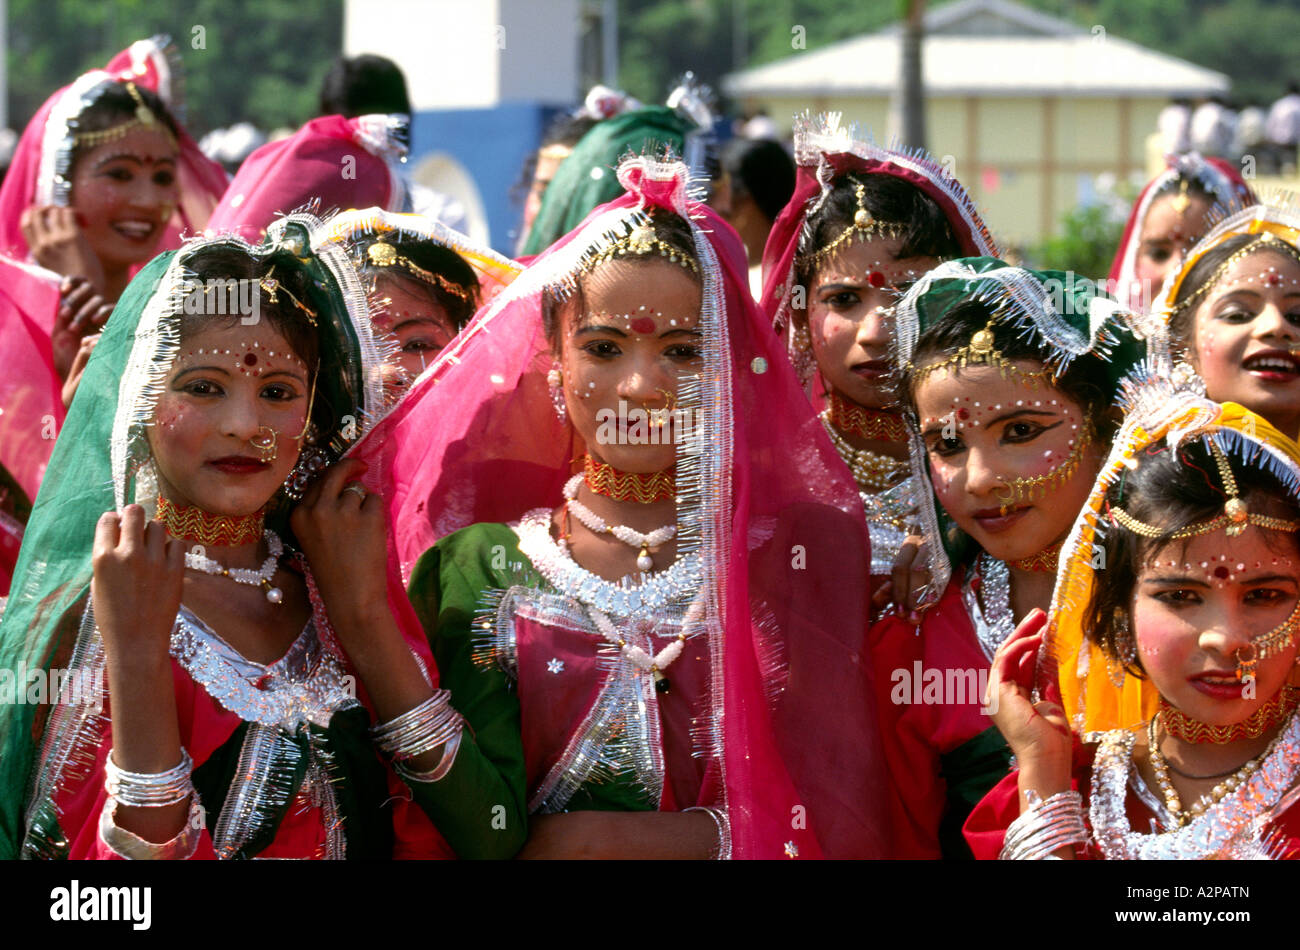 port blair girls Port blair ( pronunciation (help info)) is the capital of the andaman and nicobar islands, a union territory of india situated in the bay of bengalit is also the local administrative sub-division of the islands, the headquarters for the district of south andaman, and is the territory's only notified town.